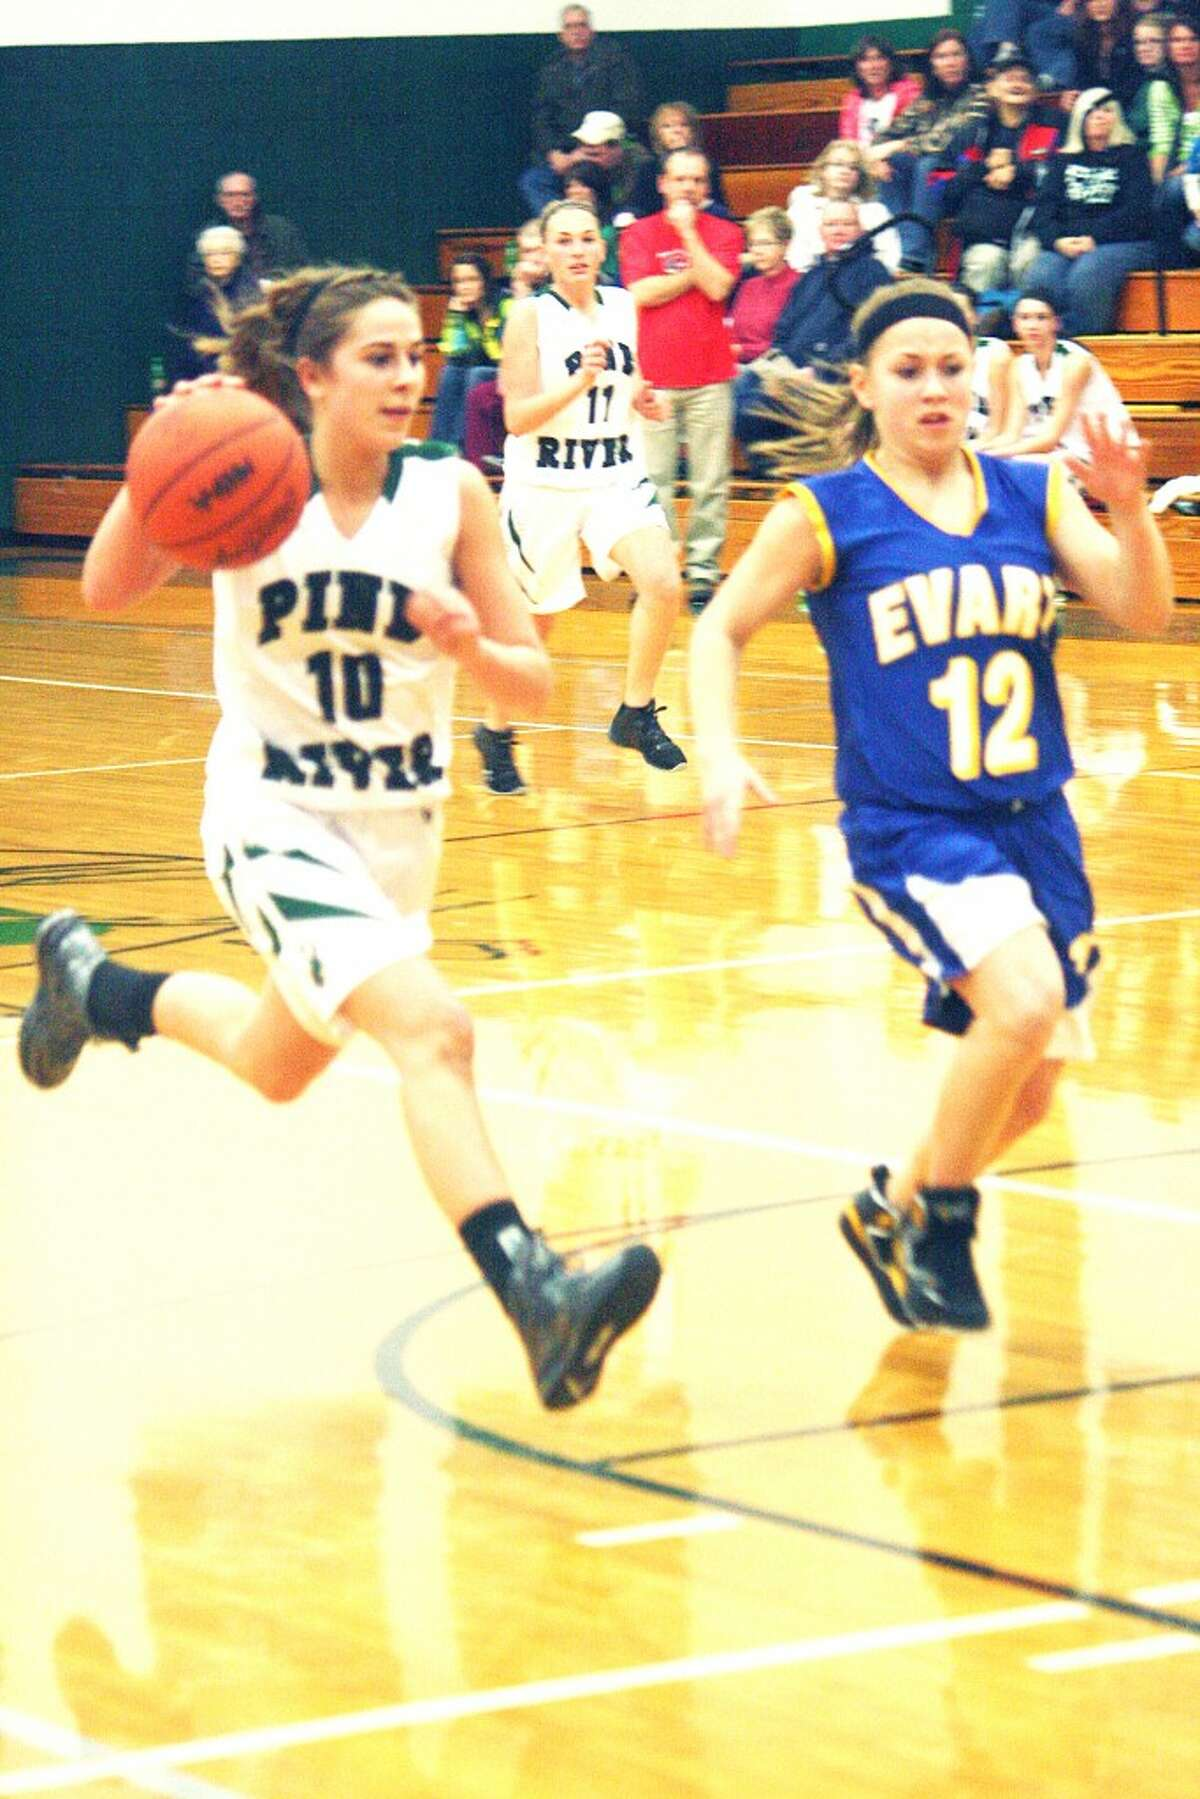 Two for Two: Kassy Nelson (10) drives past Evart's Tabby Turley (12). (Herald Review photo/John Raffel)